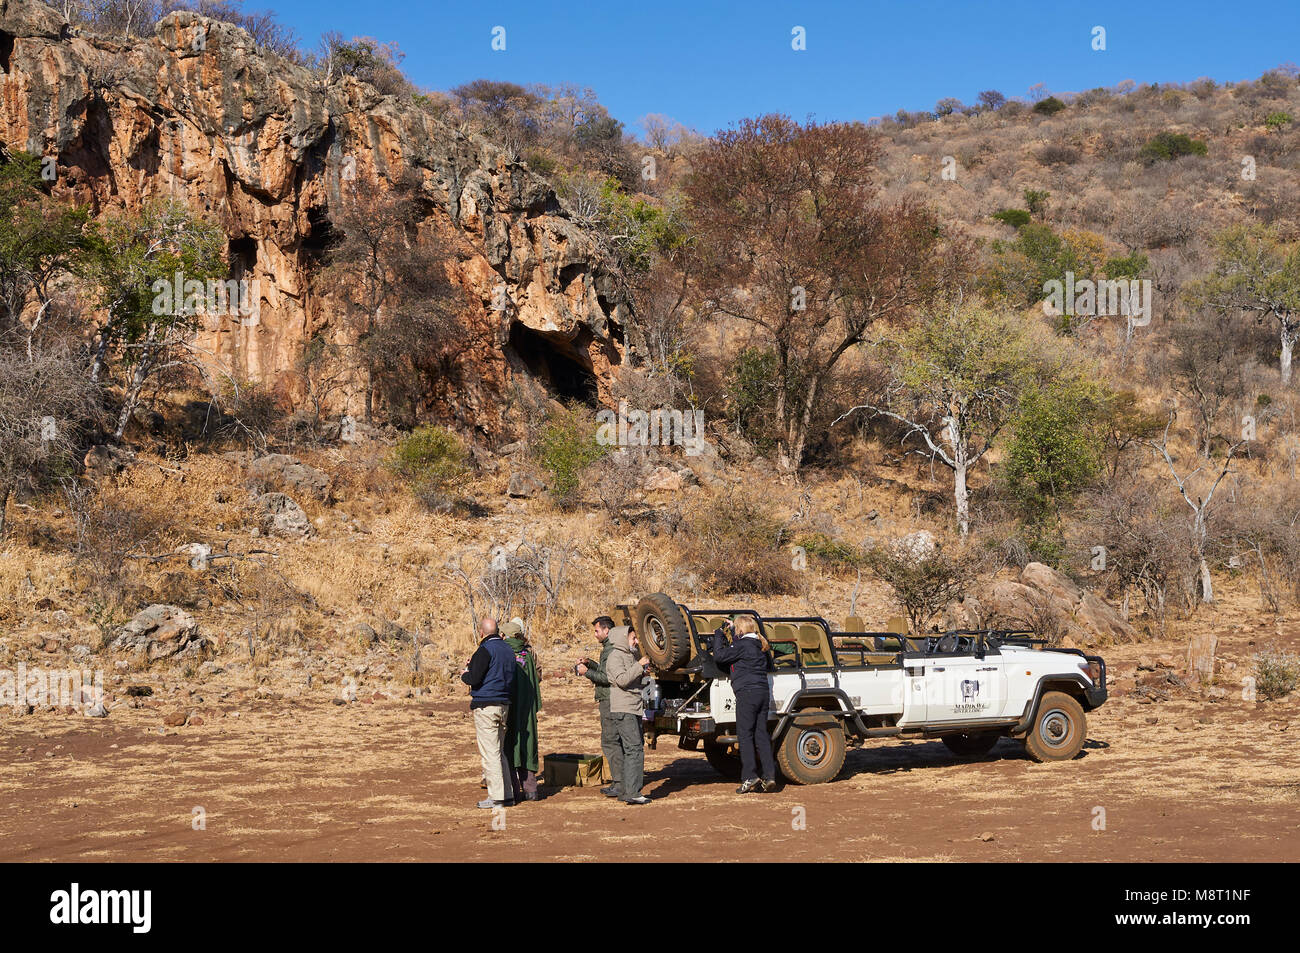 A stop on an early morning safari at Madikwe Game Reserve, so that Tourists can have early morning refreshments. - Stock Image